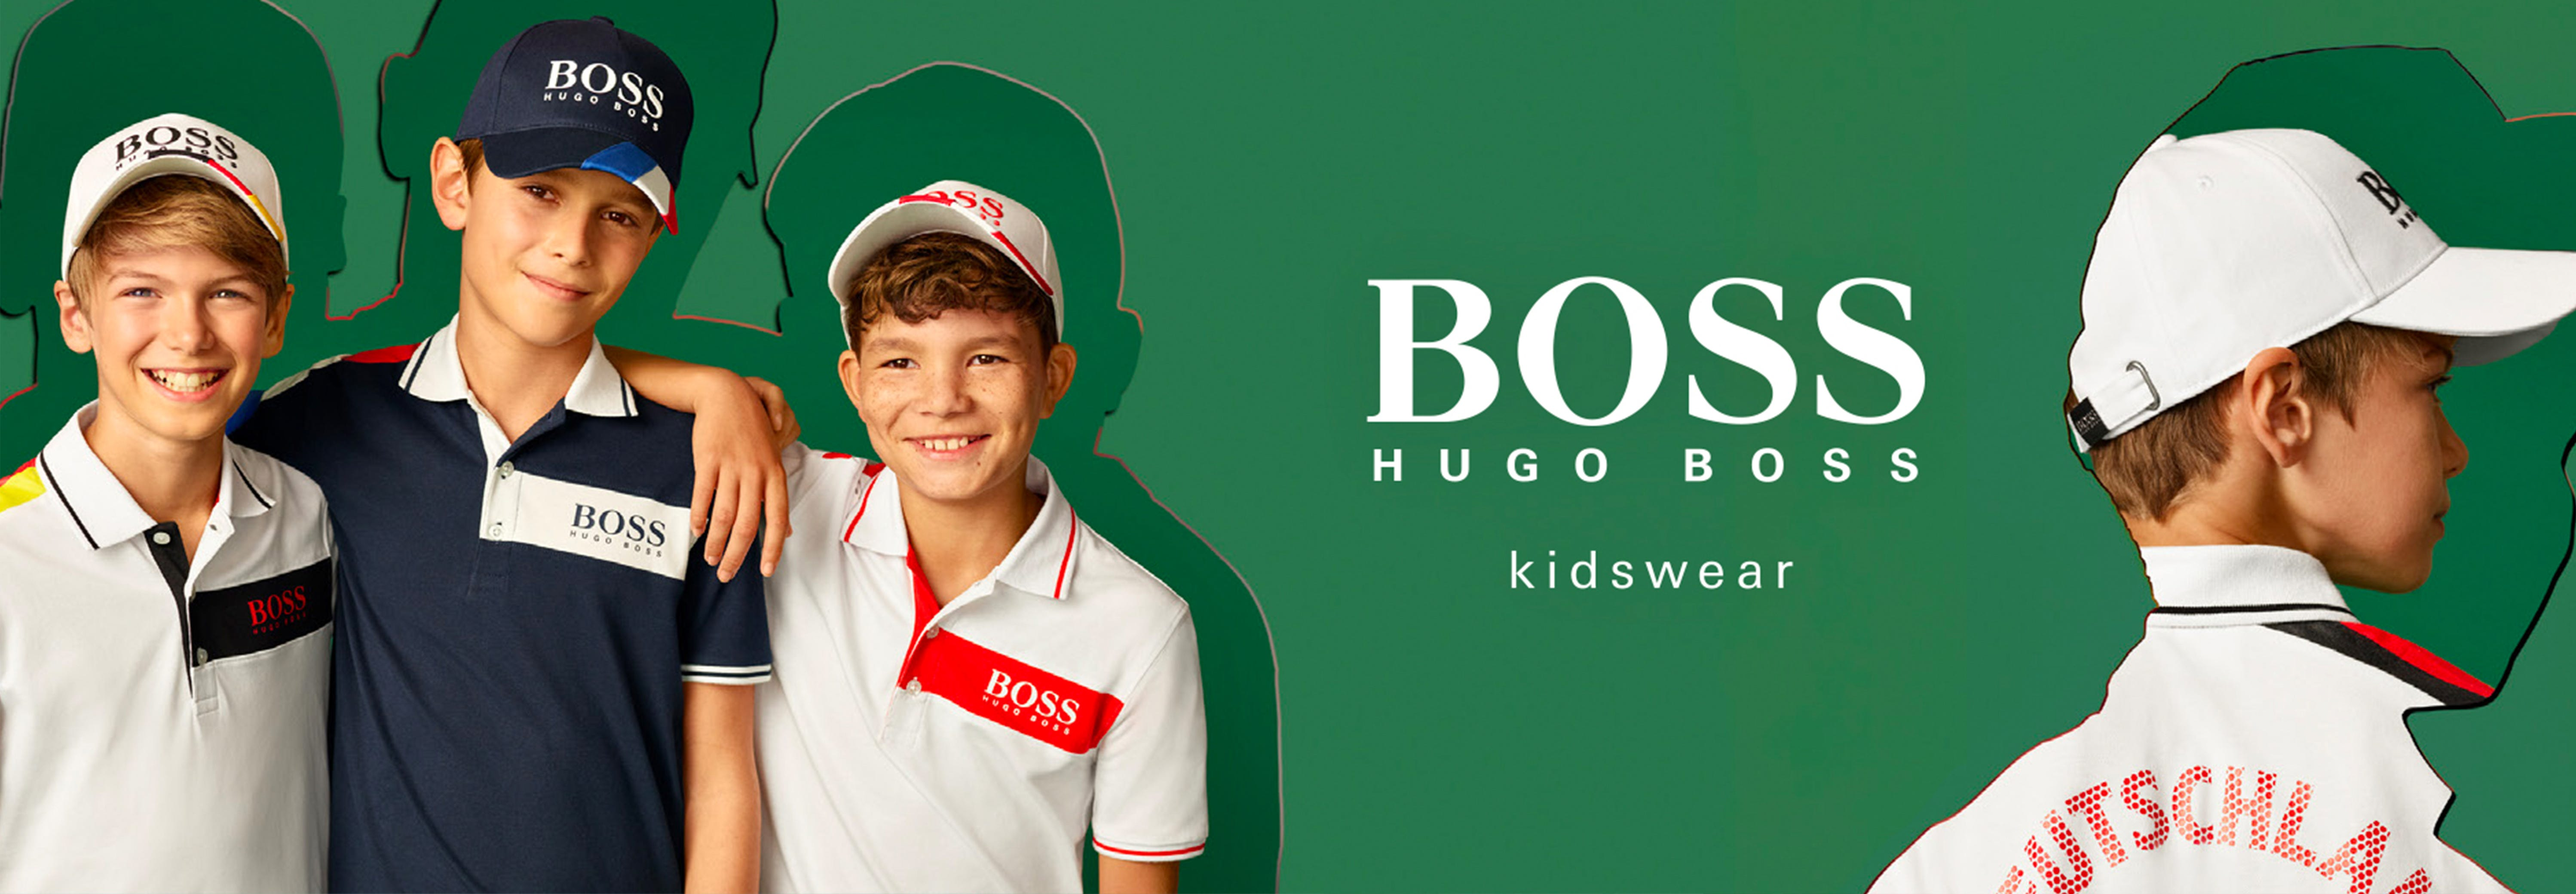 new designer kids boss 2020 spring banner